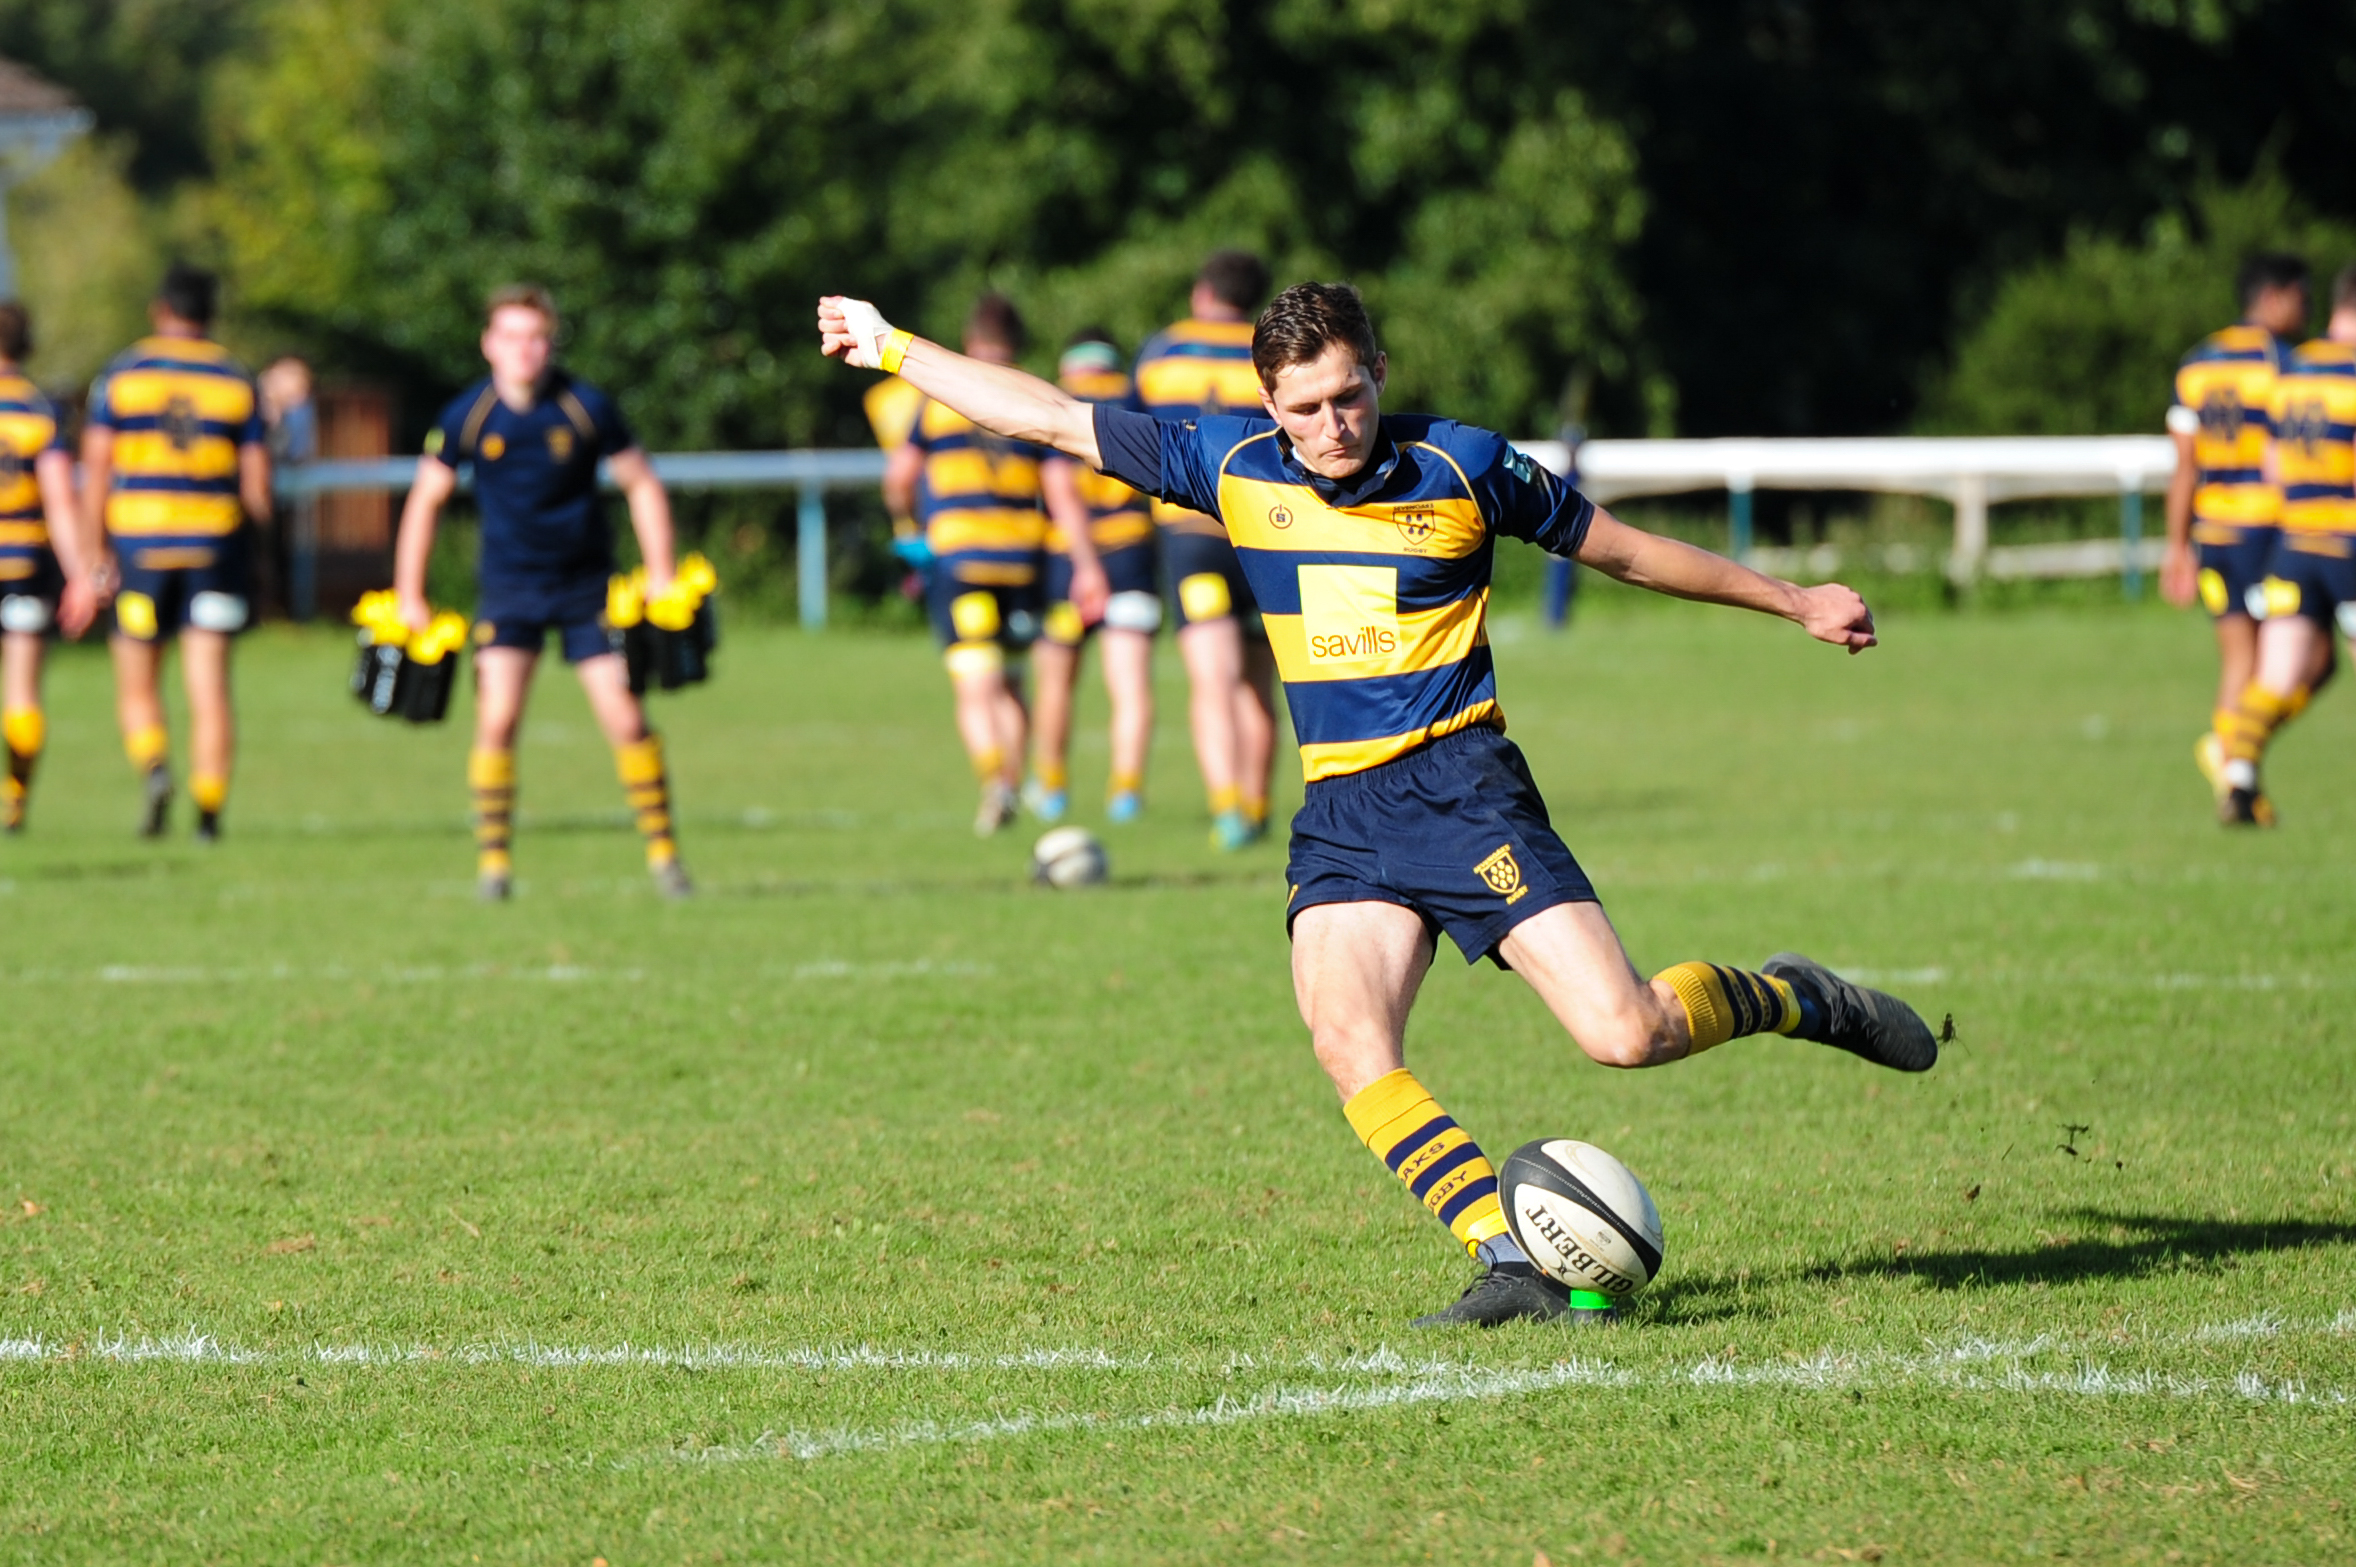 Oaks Ben Adams, pictured here earlier on in the season, kicked 17 points on Saturday and was faultless from the tee. Photo Credit: David Purday